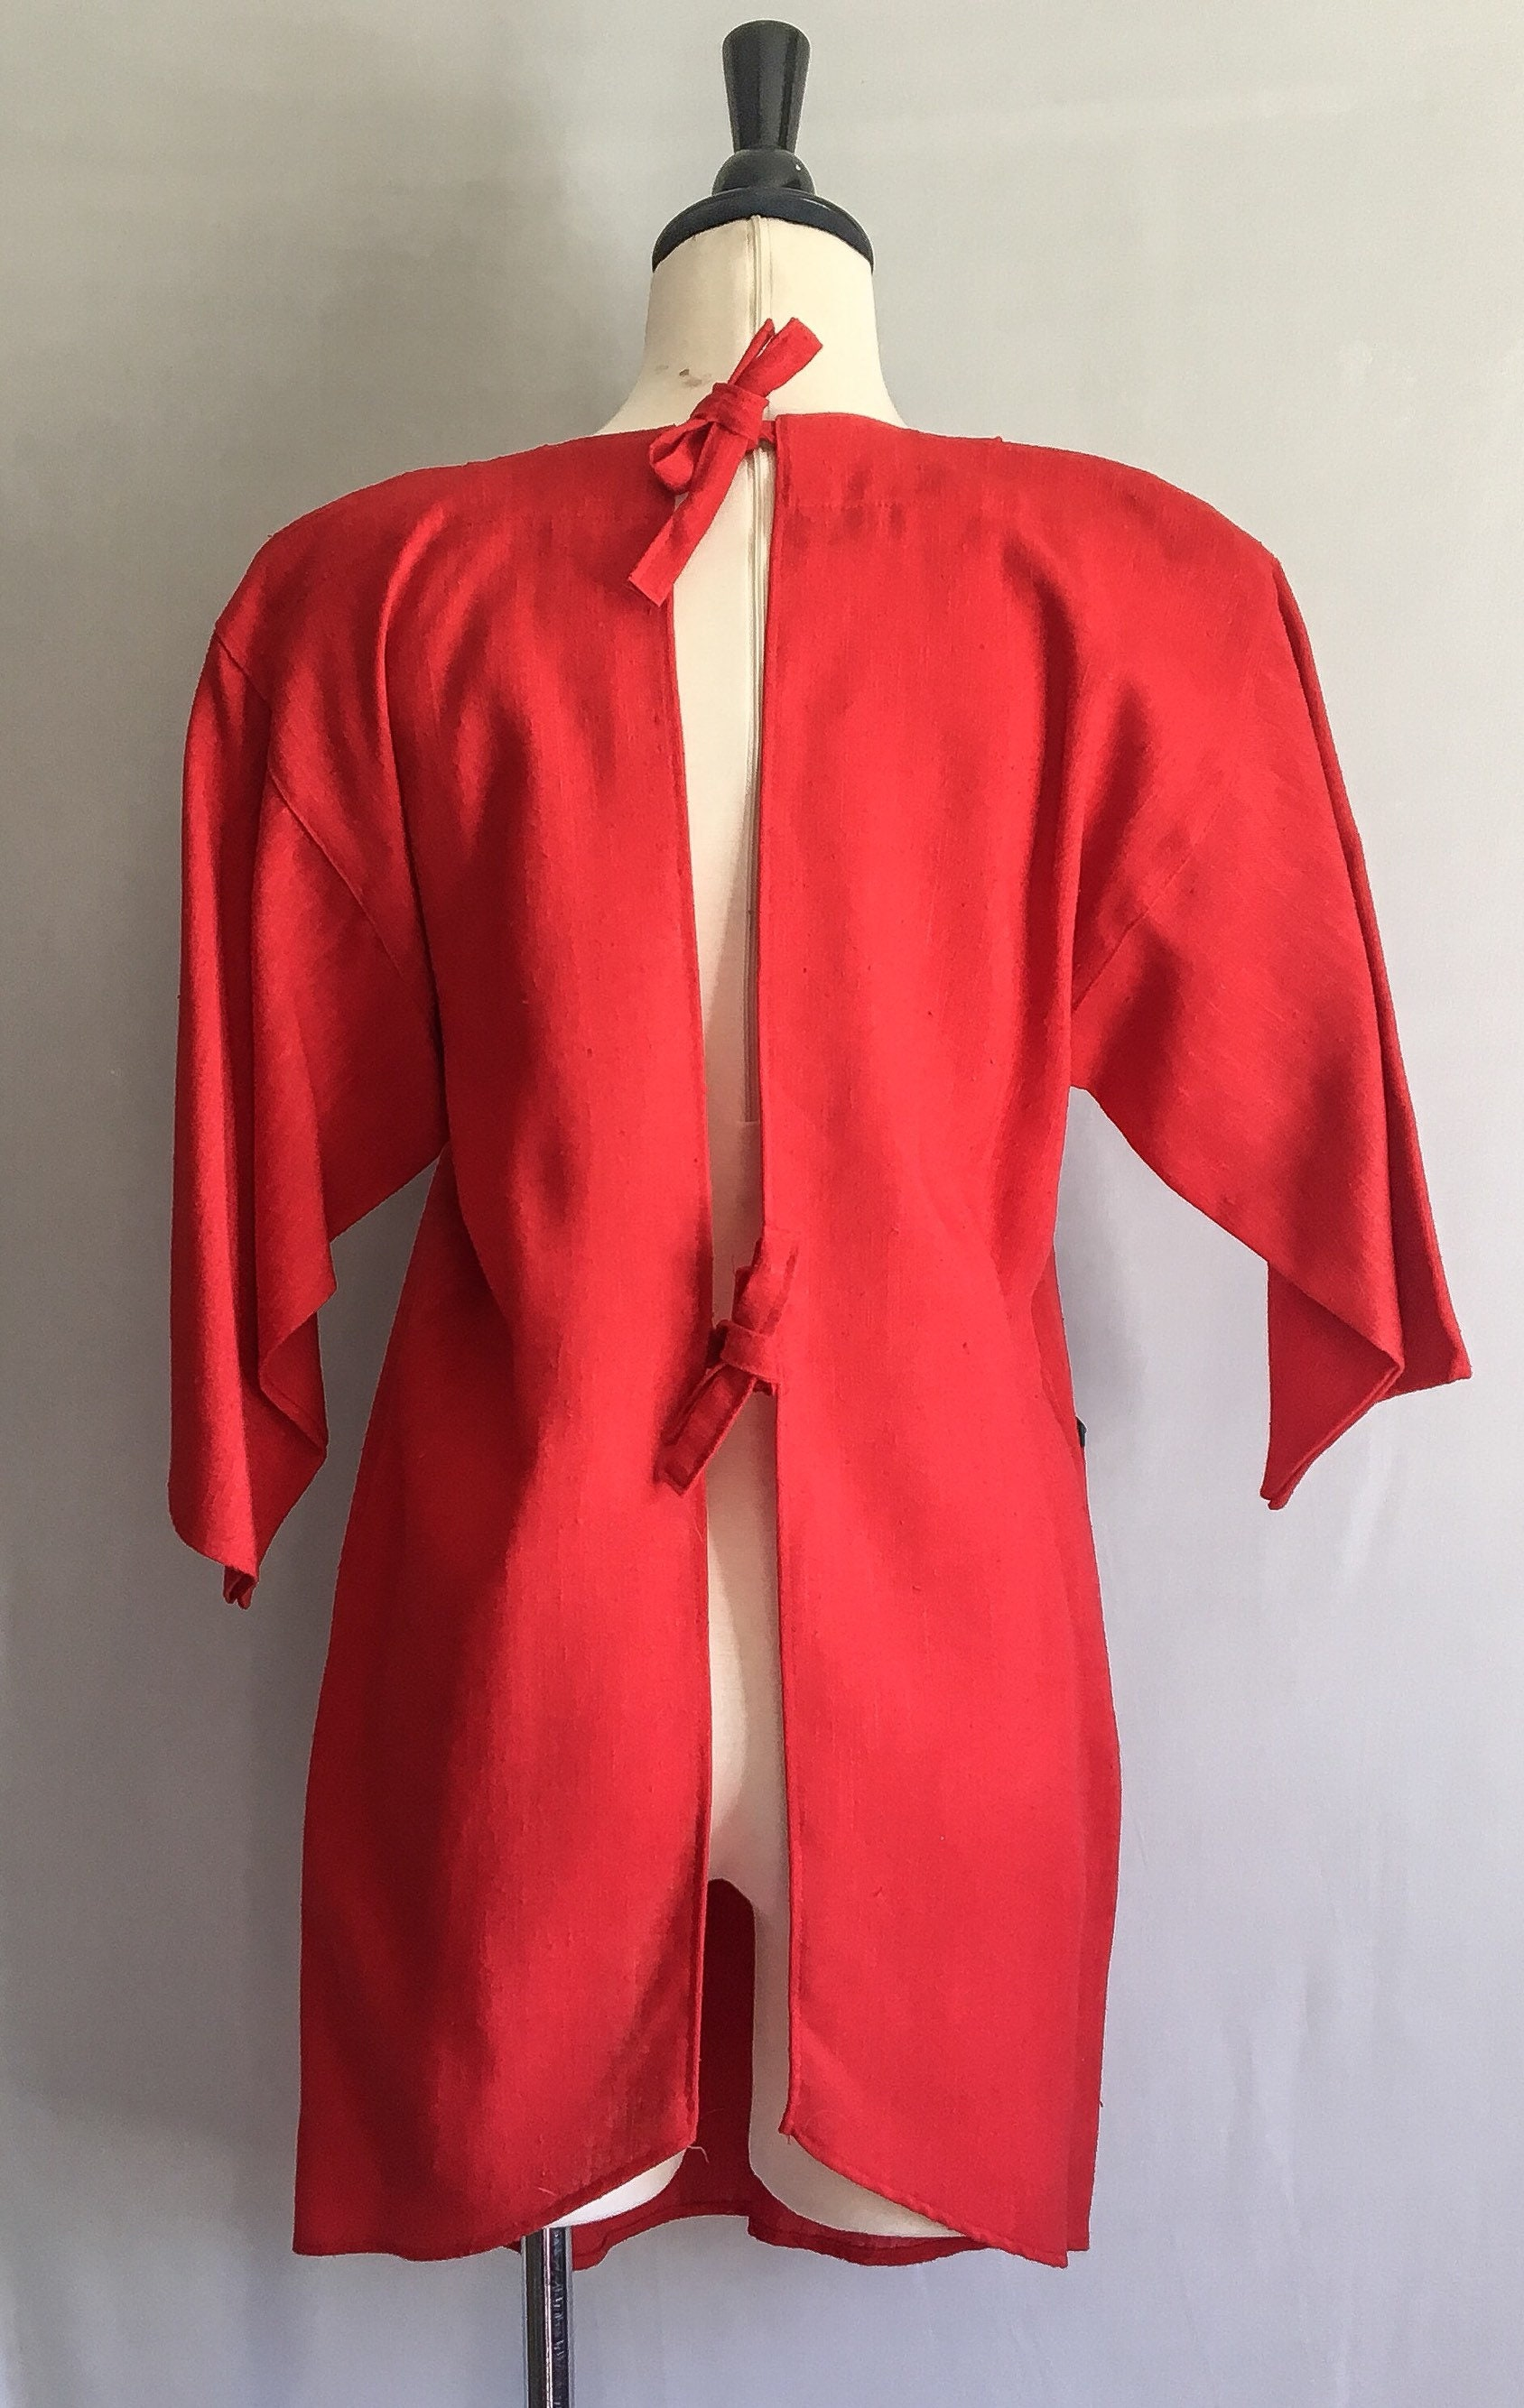 Vintage Aprons, Retro Aprons, Old Fashioned Aprons & Patterns 65 Off Vintage Minimalist Smock DressNeiman Marcus Rayon Silk Linen Red with Contrast Tie Back Open Apron Front Po $23.45 AT vintagedancer.com